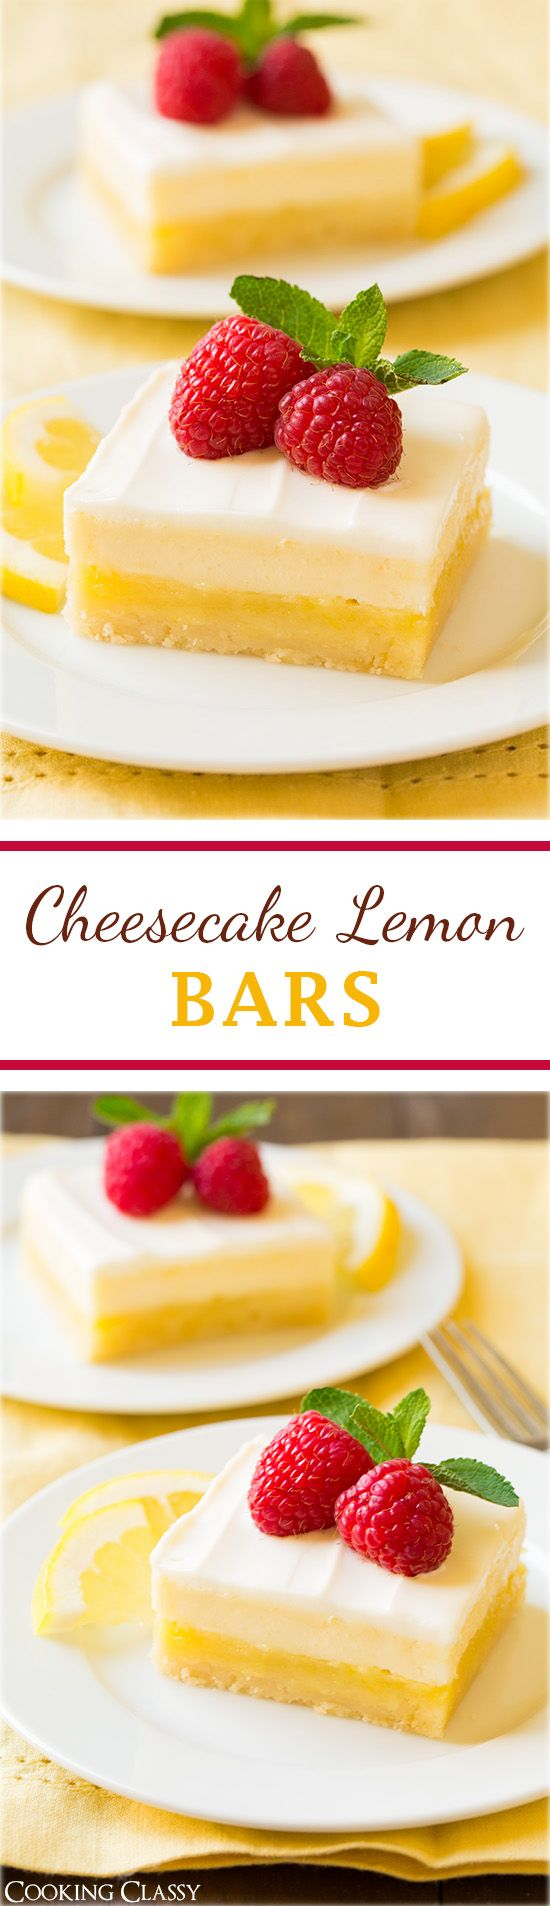 Cheesecake Lemon Bars | Recipe | The lemons, Bar and Lemon bars